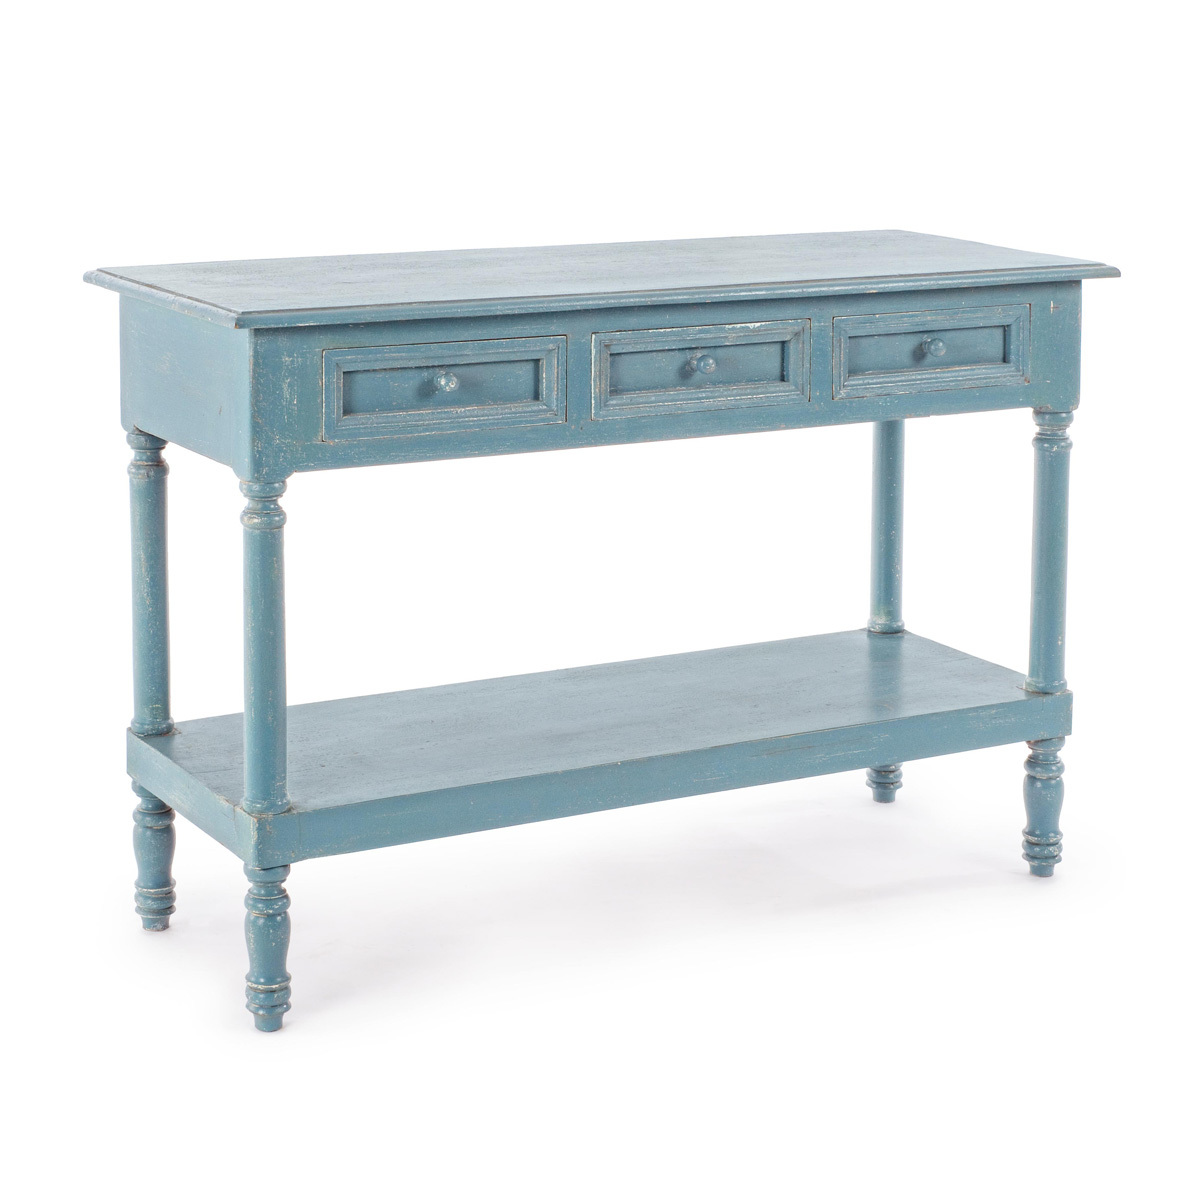 Photos 1: Bizzotto Fixed wood console l.120 x 45 - blue avio with 3 drawers 0745675